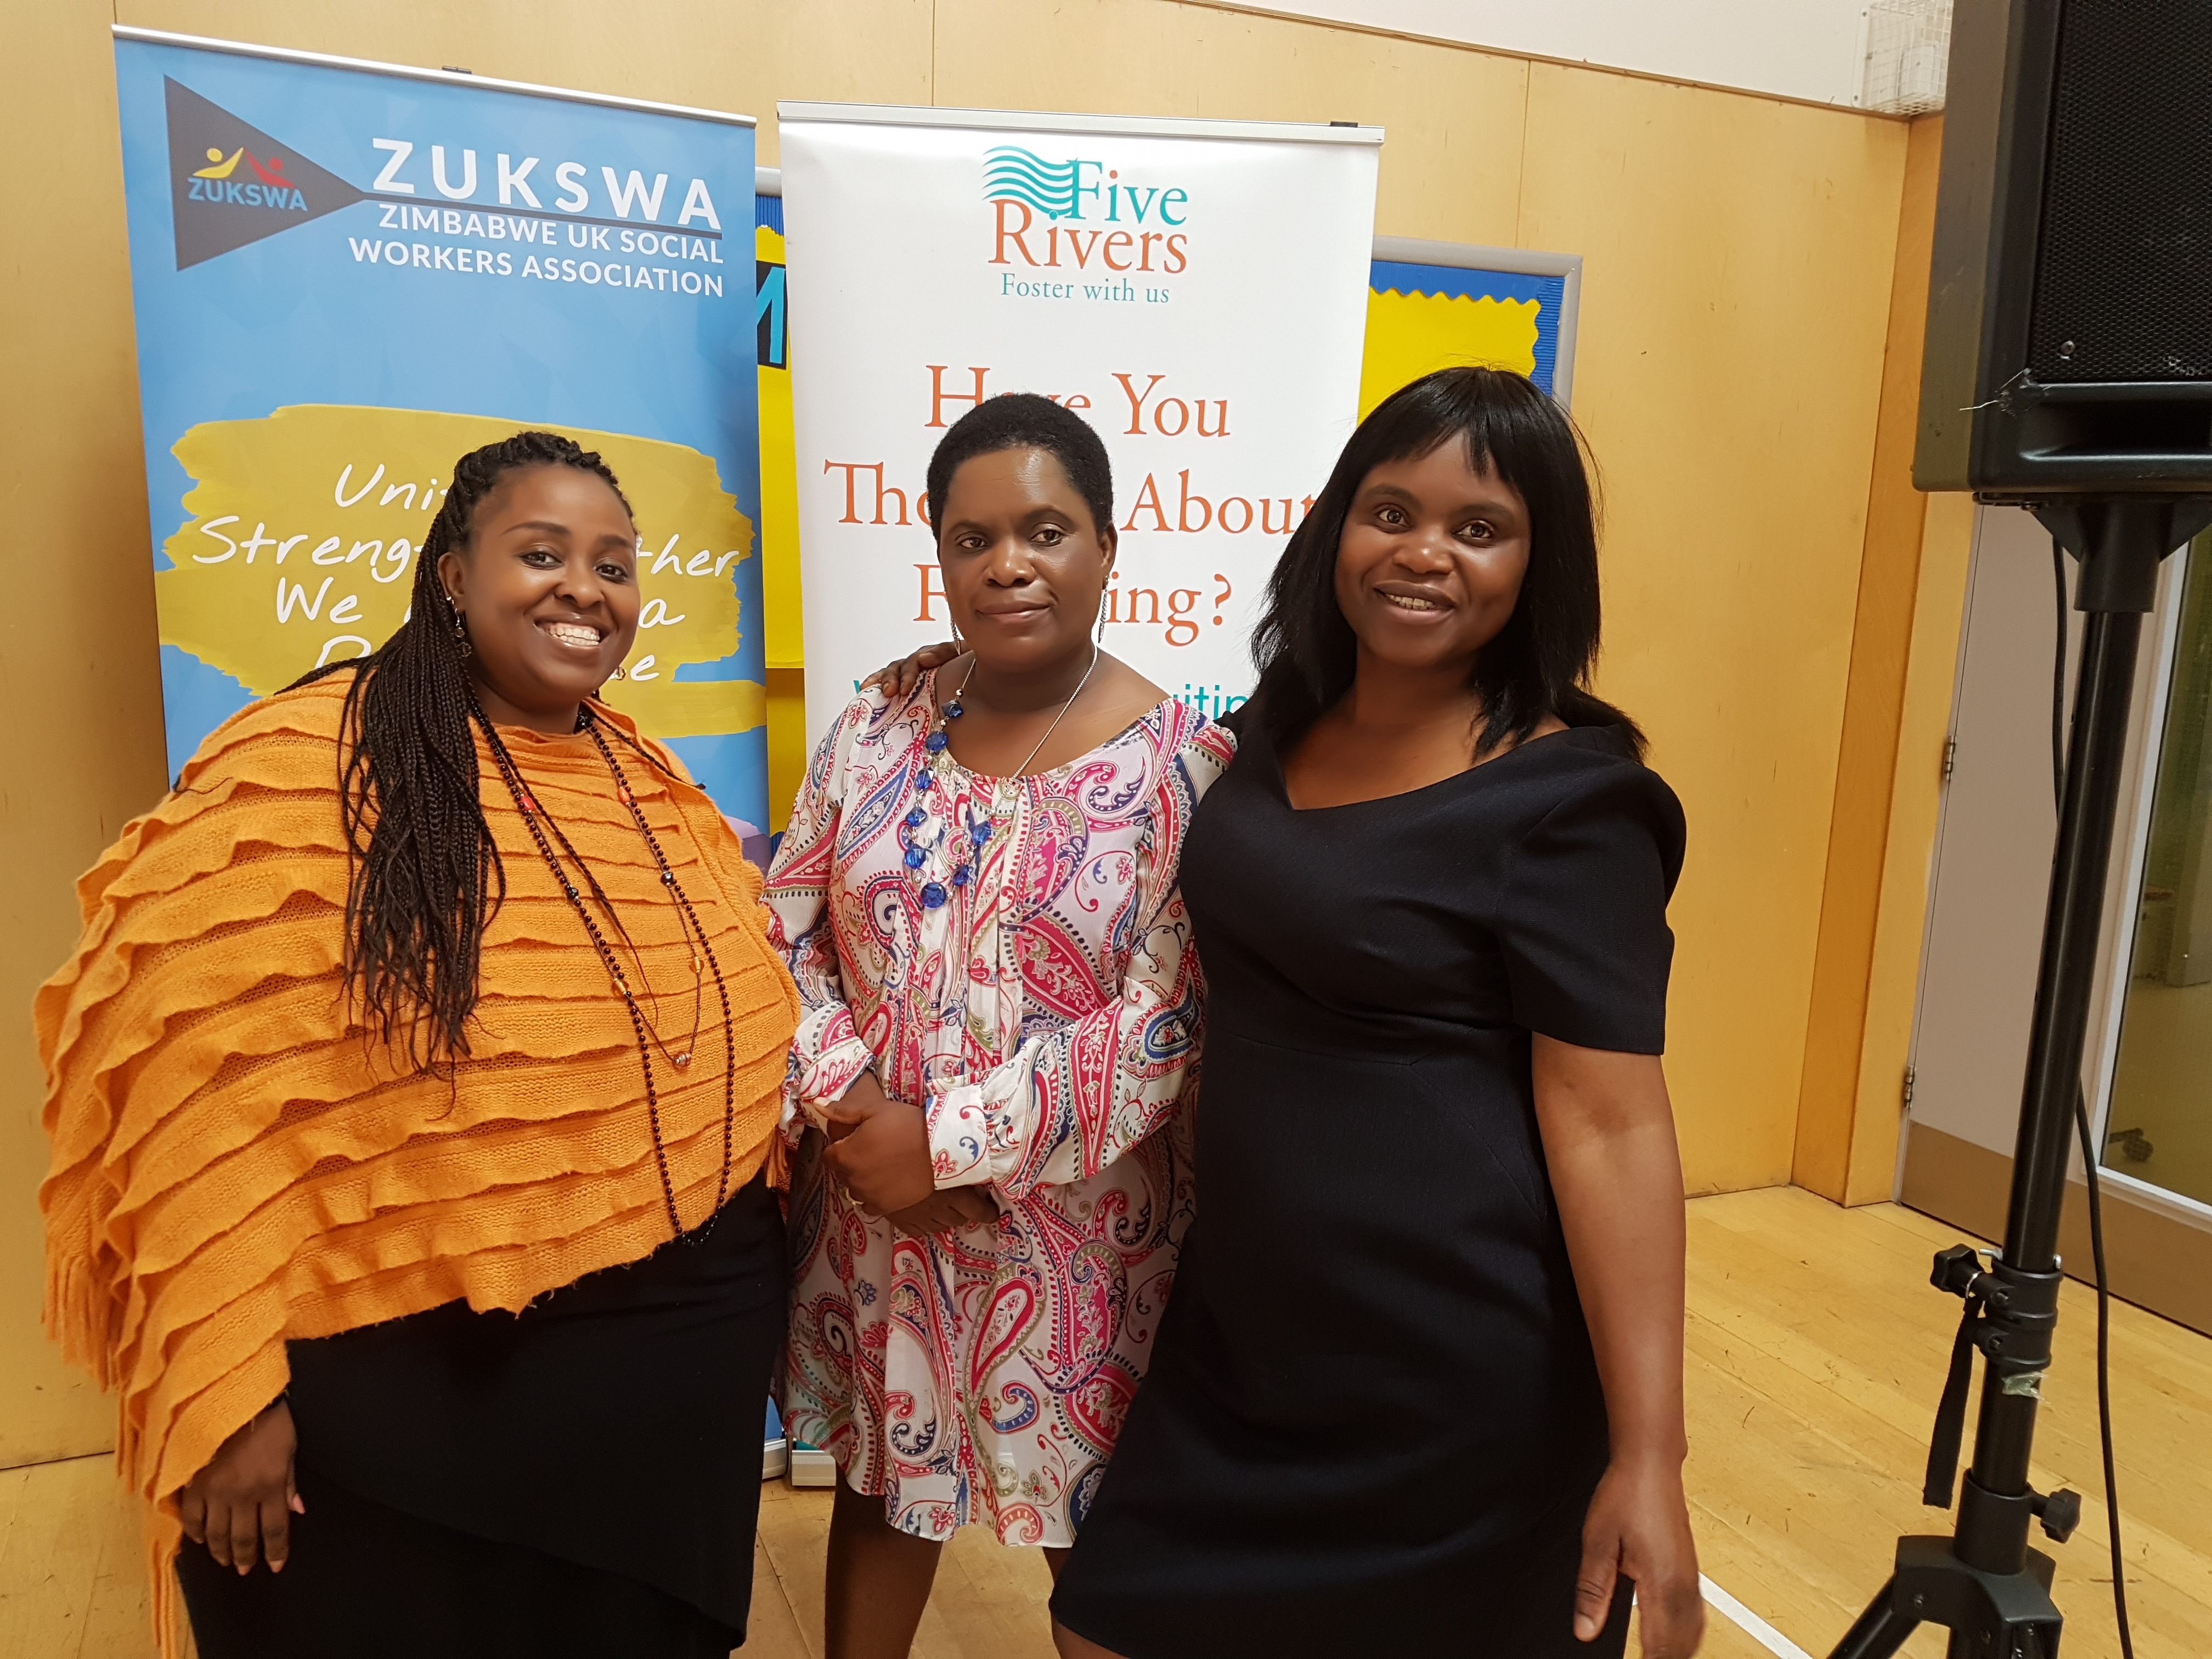 Networking at a ZUKSWA event